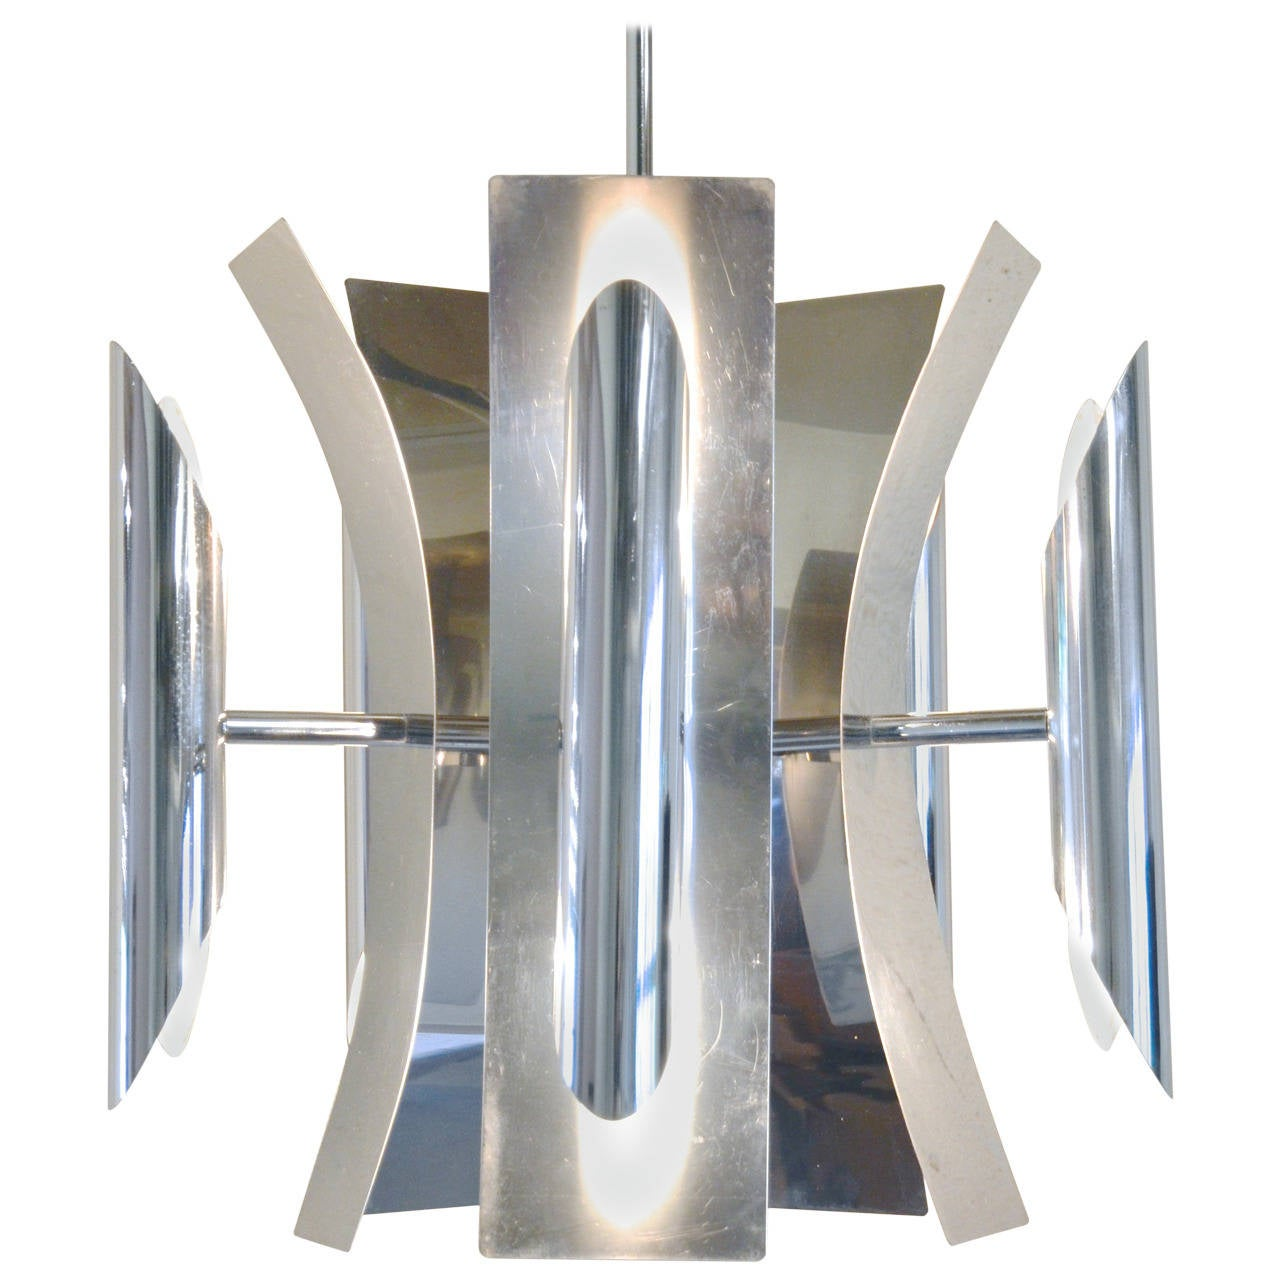 Italian mid century modern chrome chandelier for sale at 1stdibs italian mid century modern chrome chandelier for sale aloadofball Choice Image